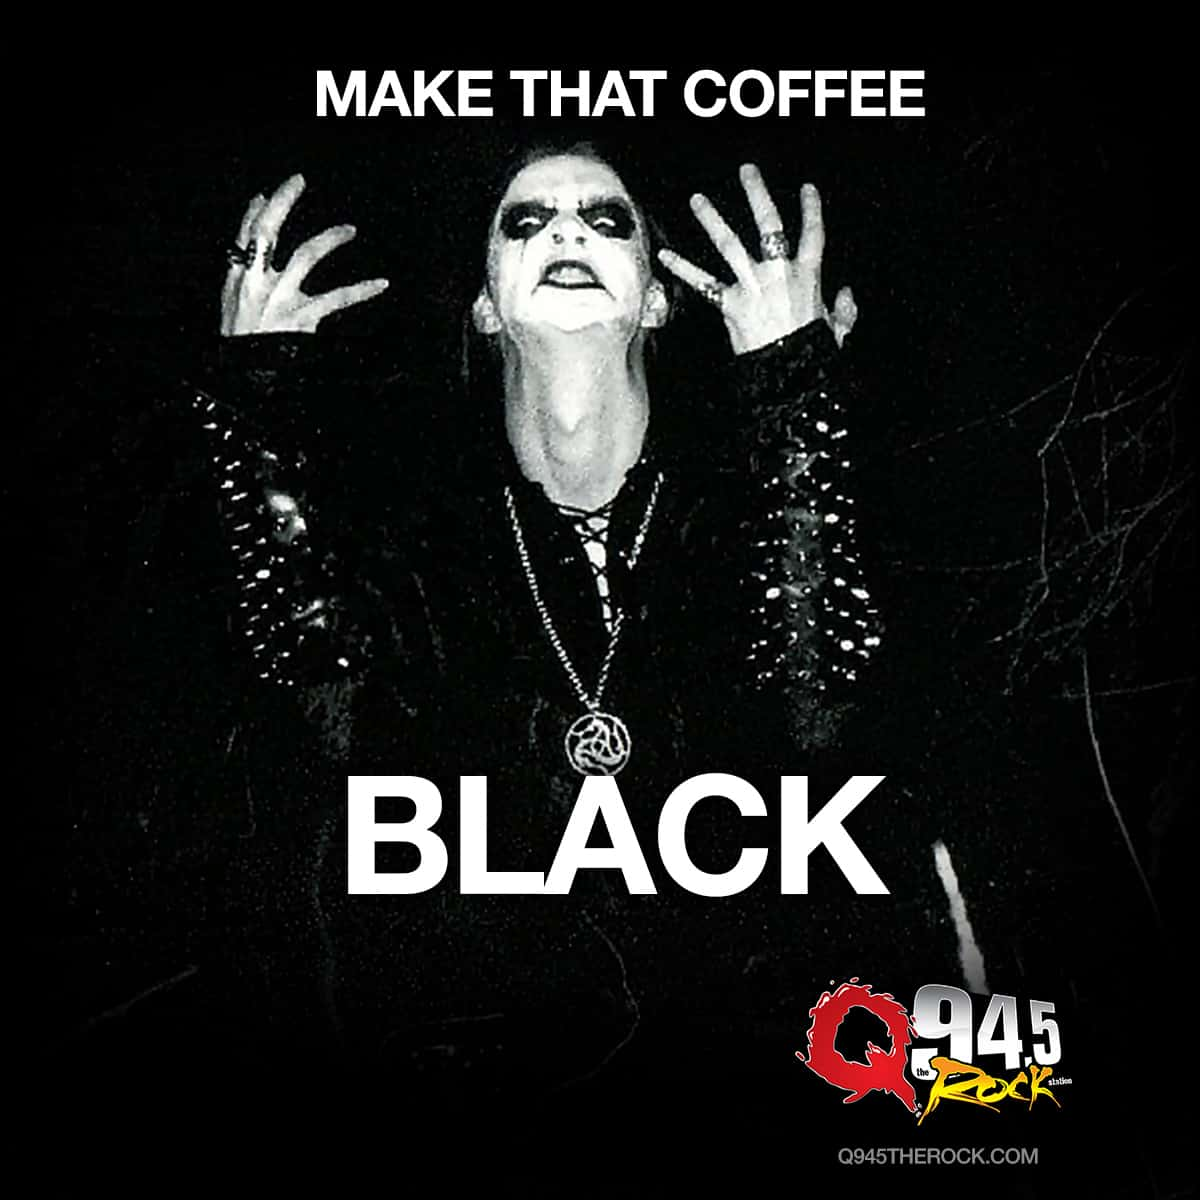 My Coffee? Blacker than the blackest black, times infinity